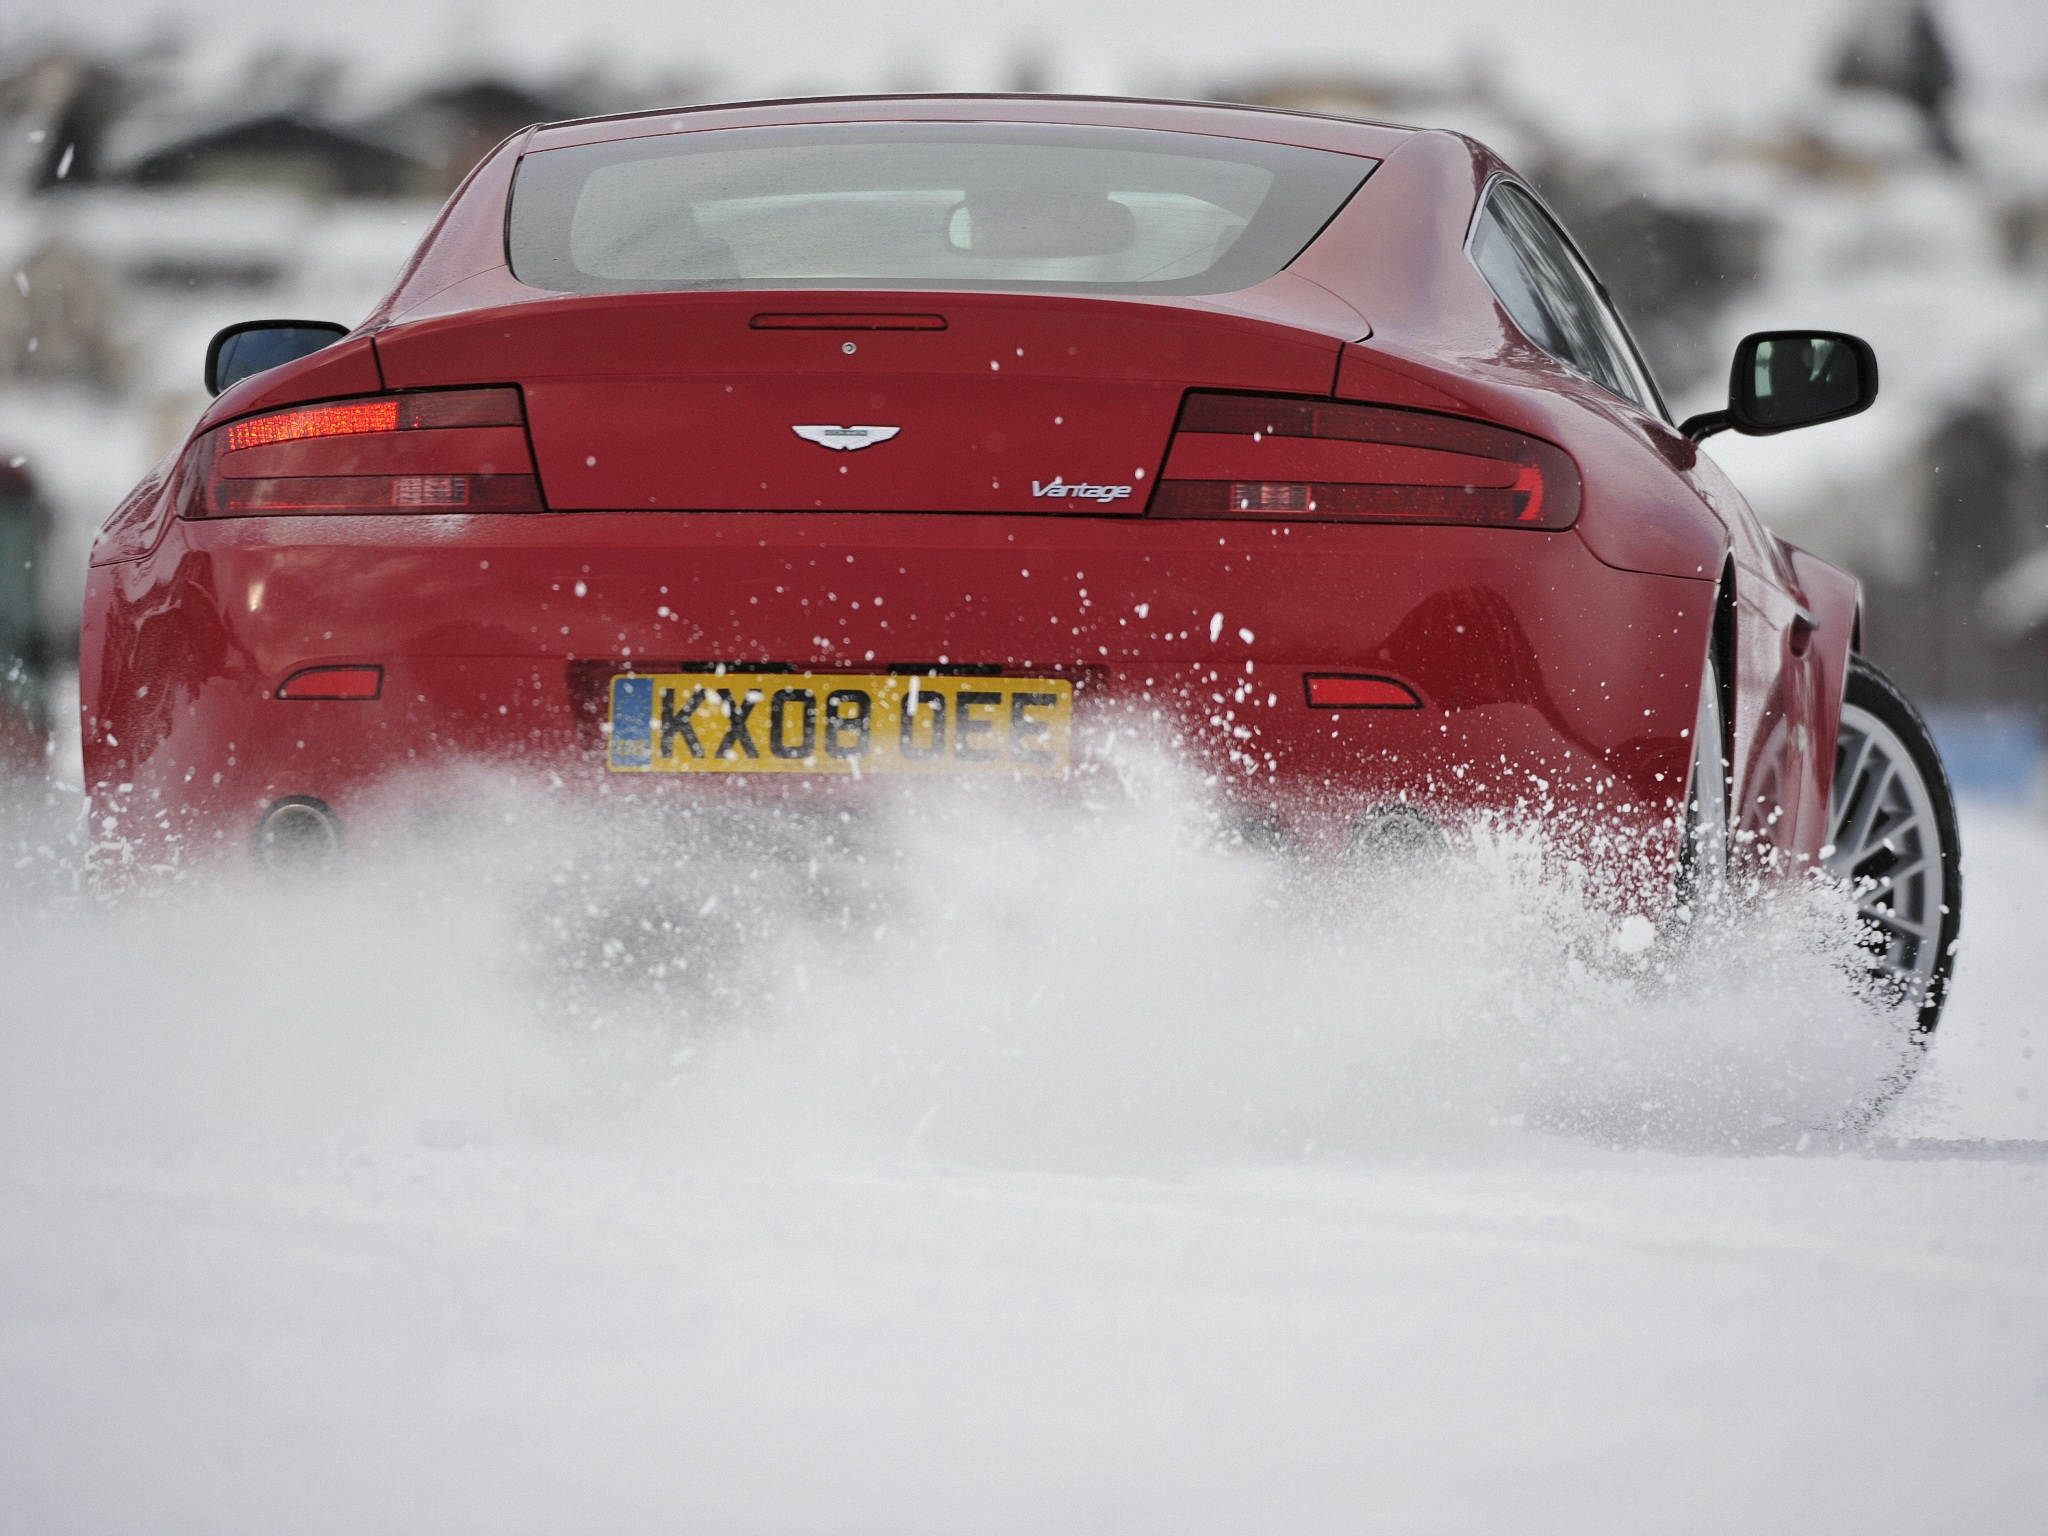 154198 download wallpaper Snow, Aston Martin, Cars, Back View, Rear View, Style, 2008, V8, Drift screensavers and pictures for free